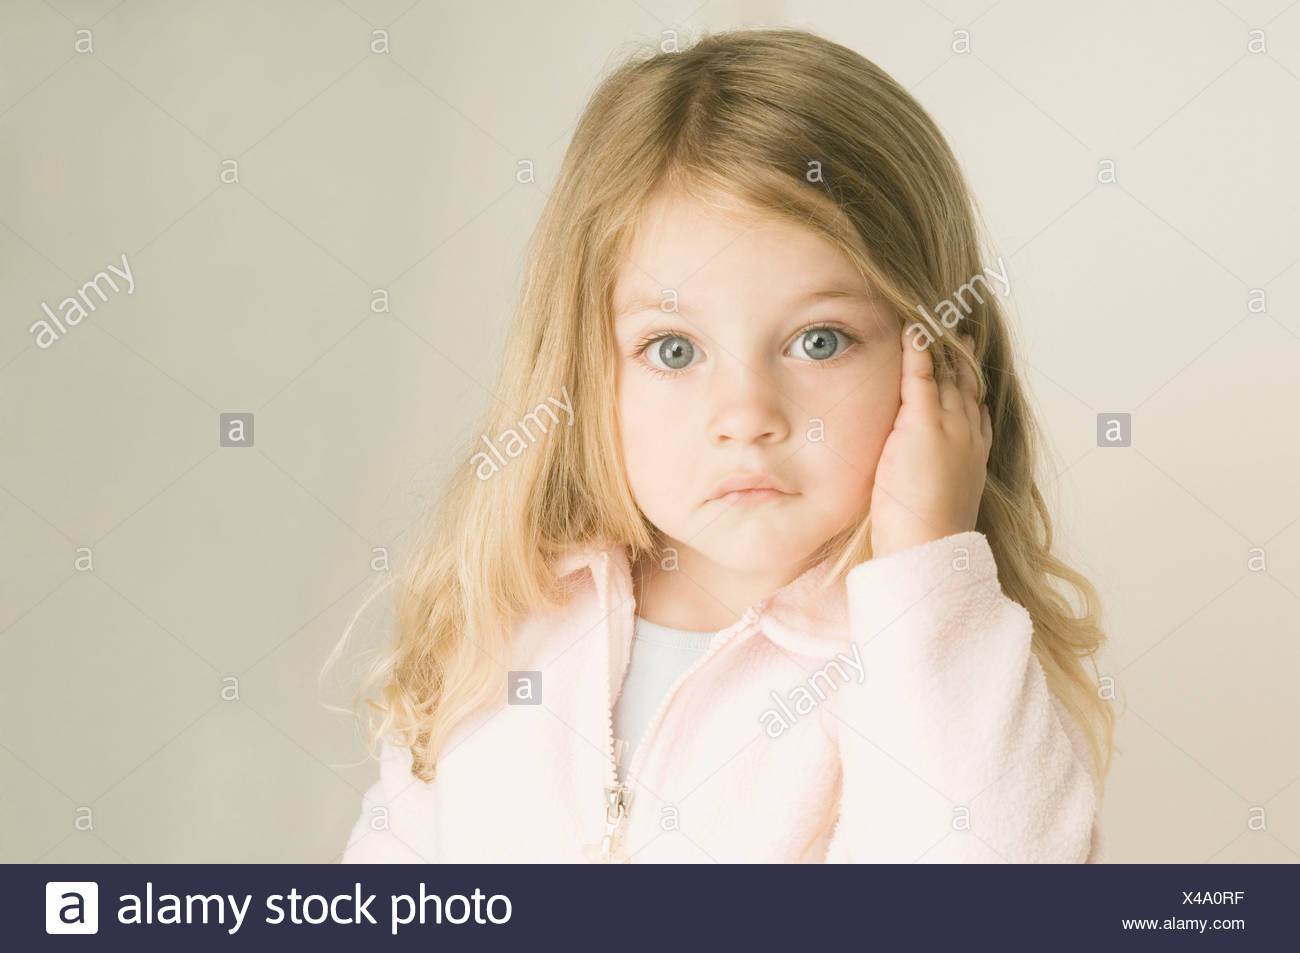 portrait of little girl with long blond hair - Stock Image